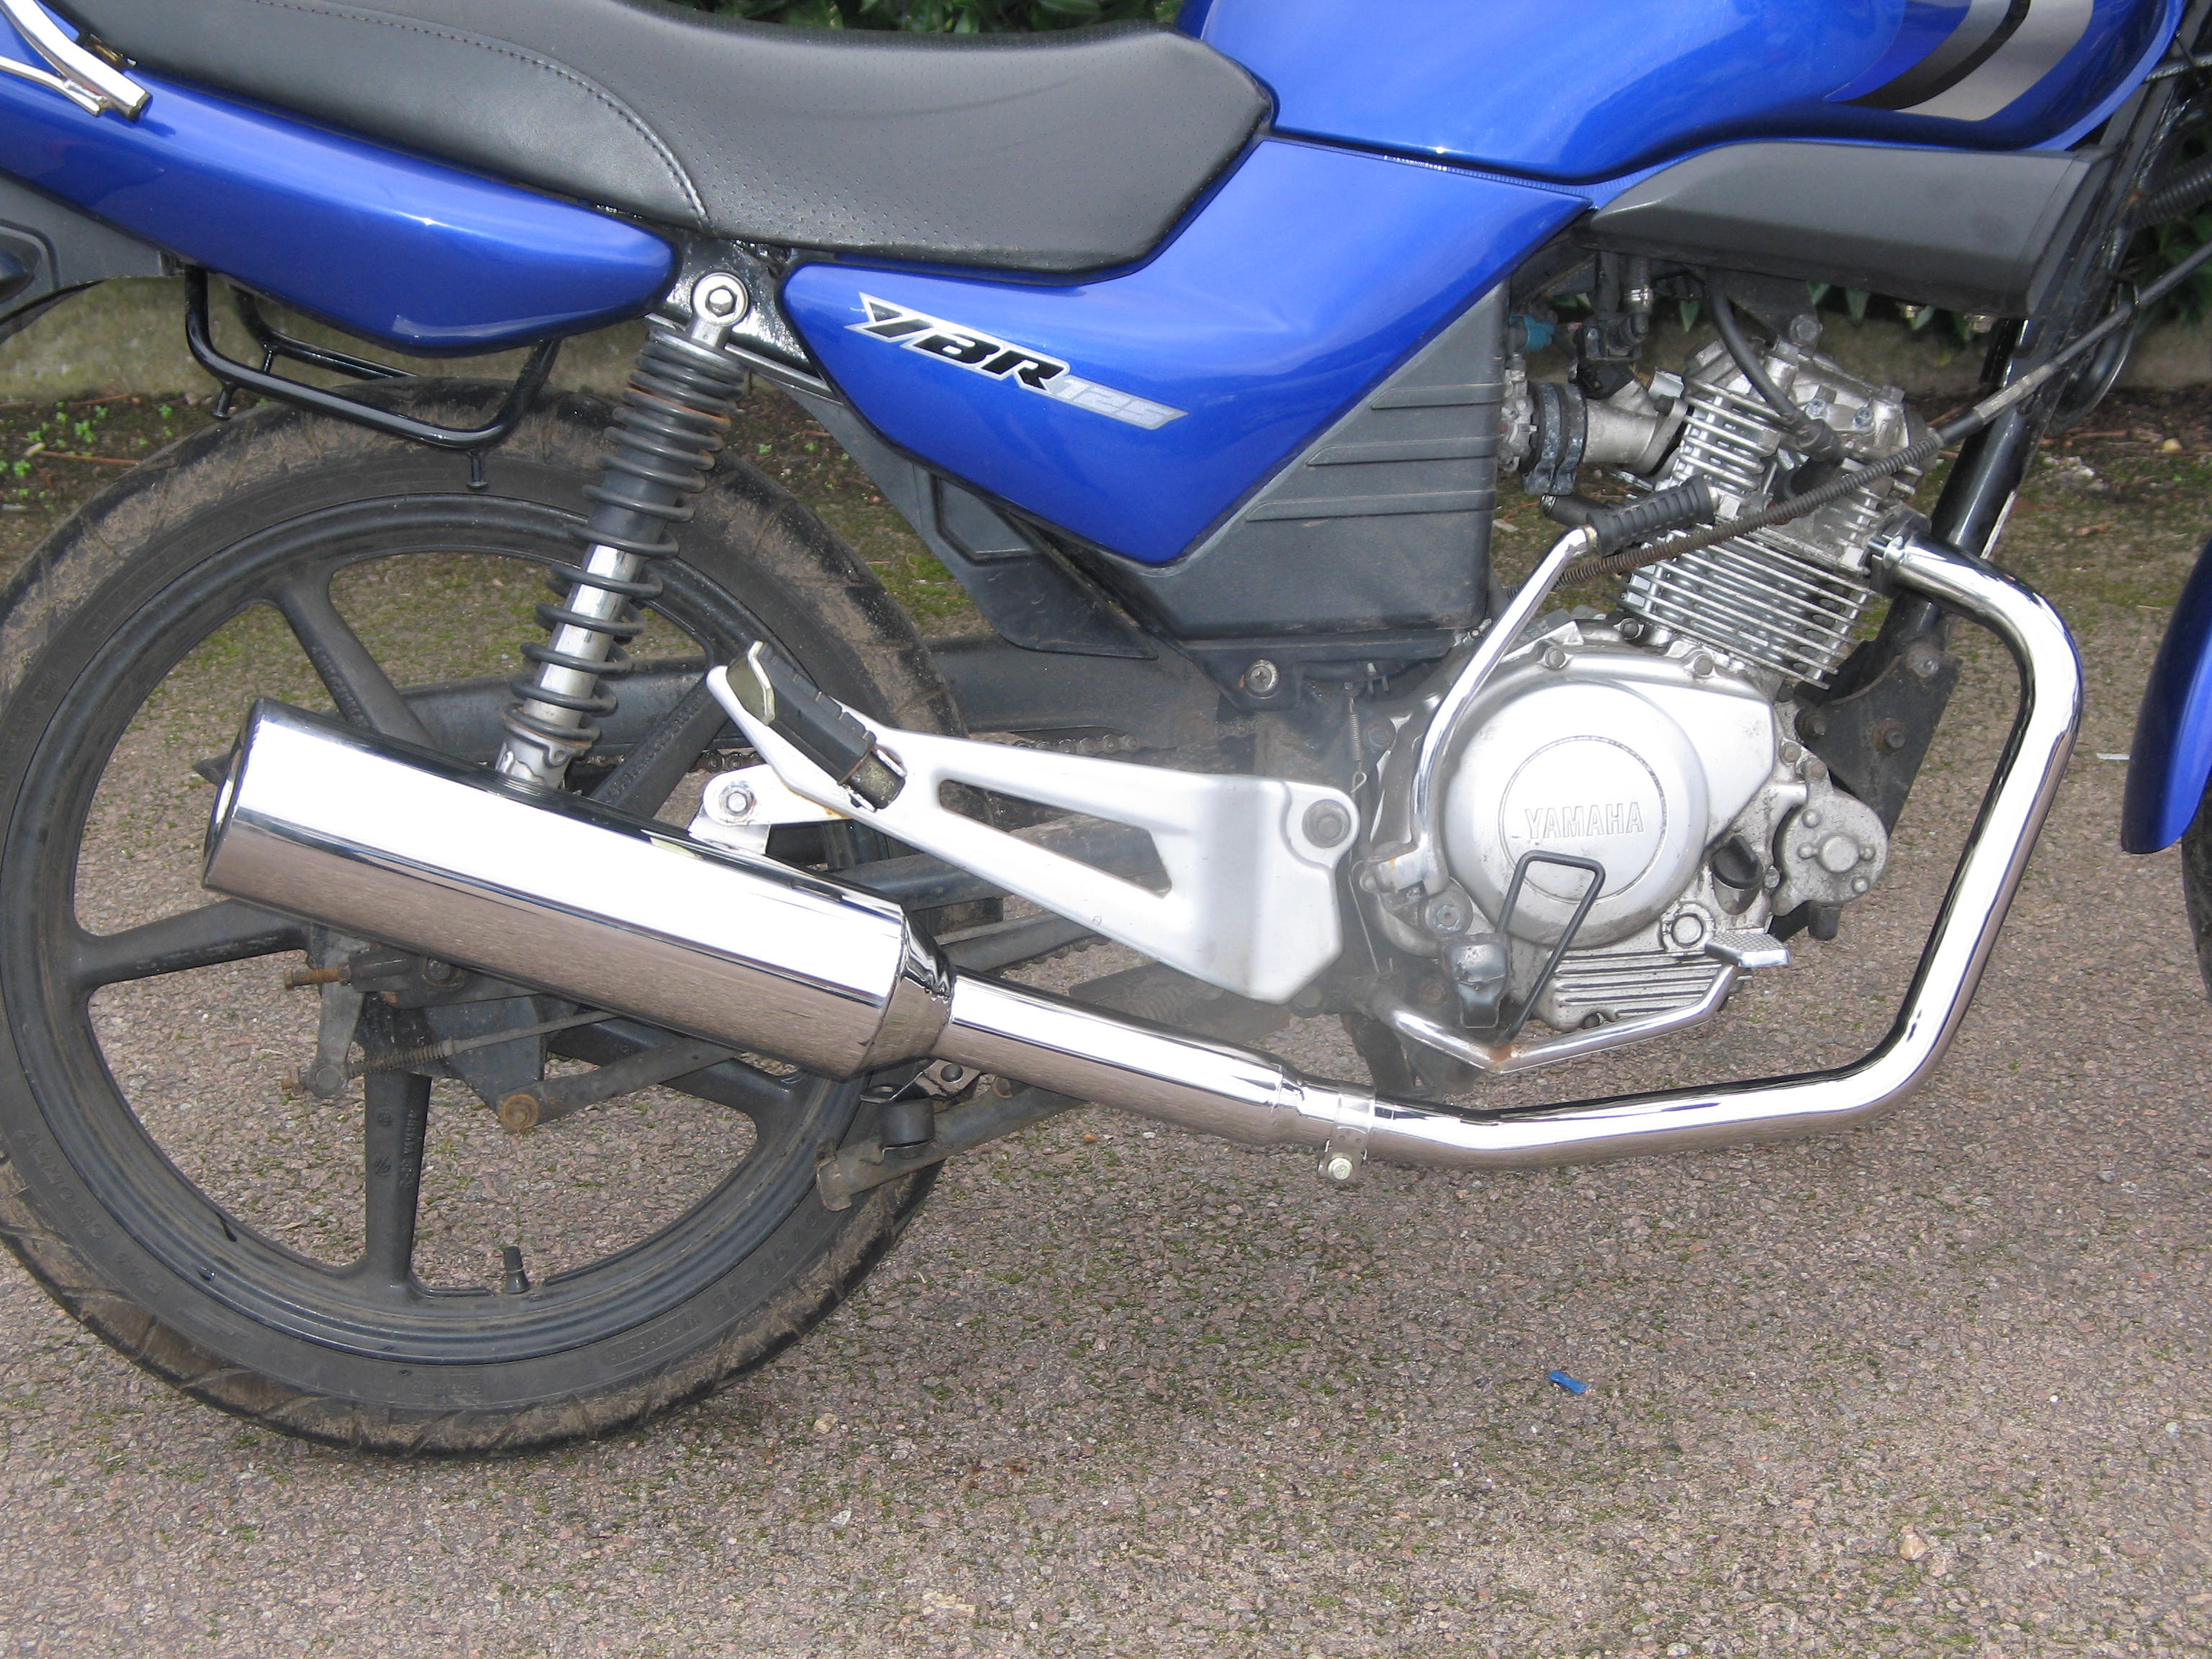 YAMAHA 4 Stroke Exhausts upto 299cc removable baffle